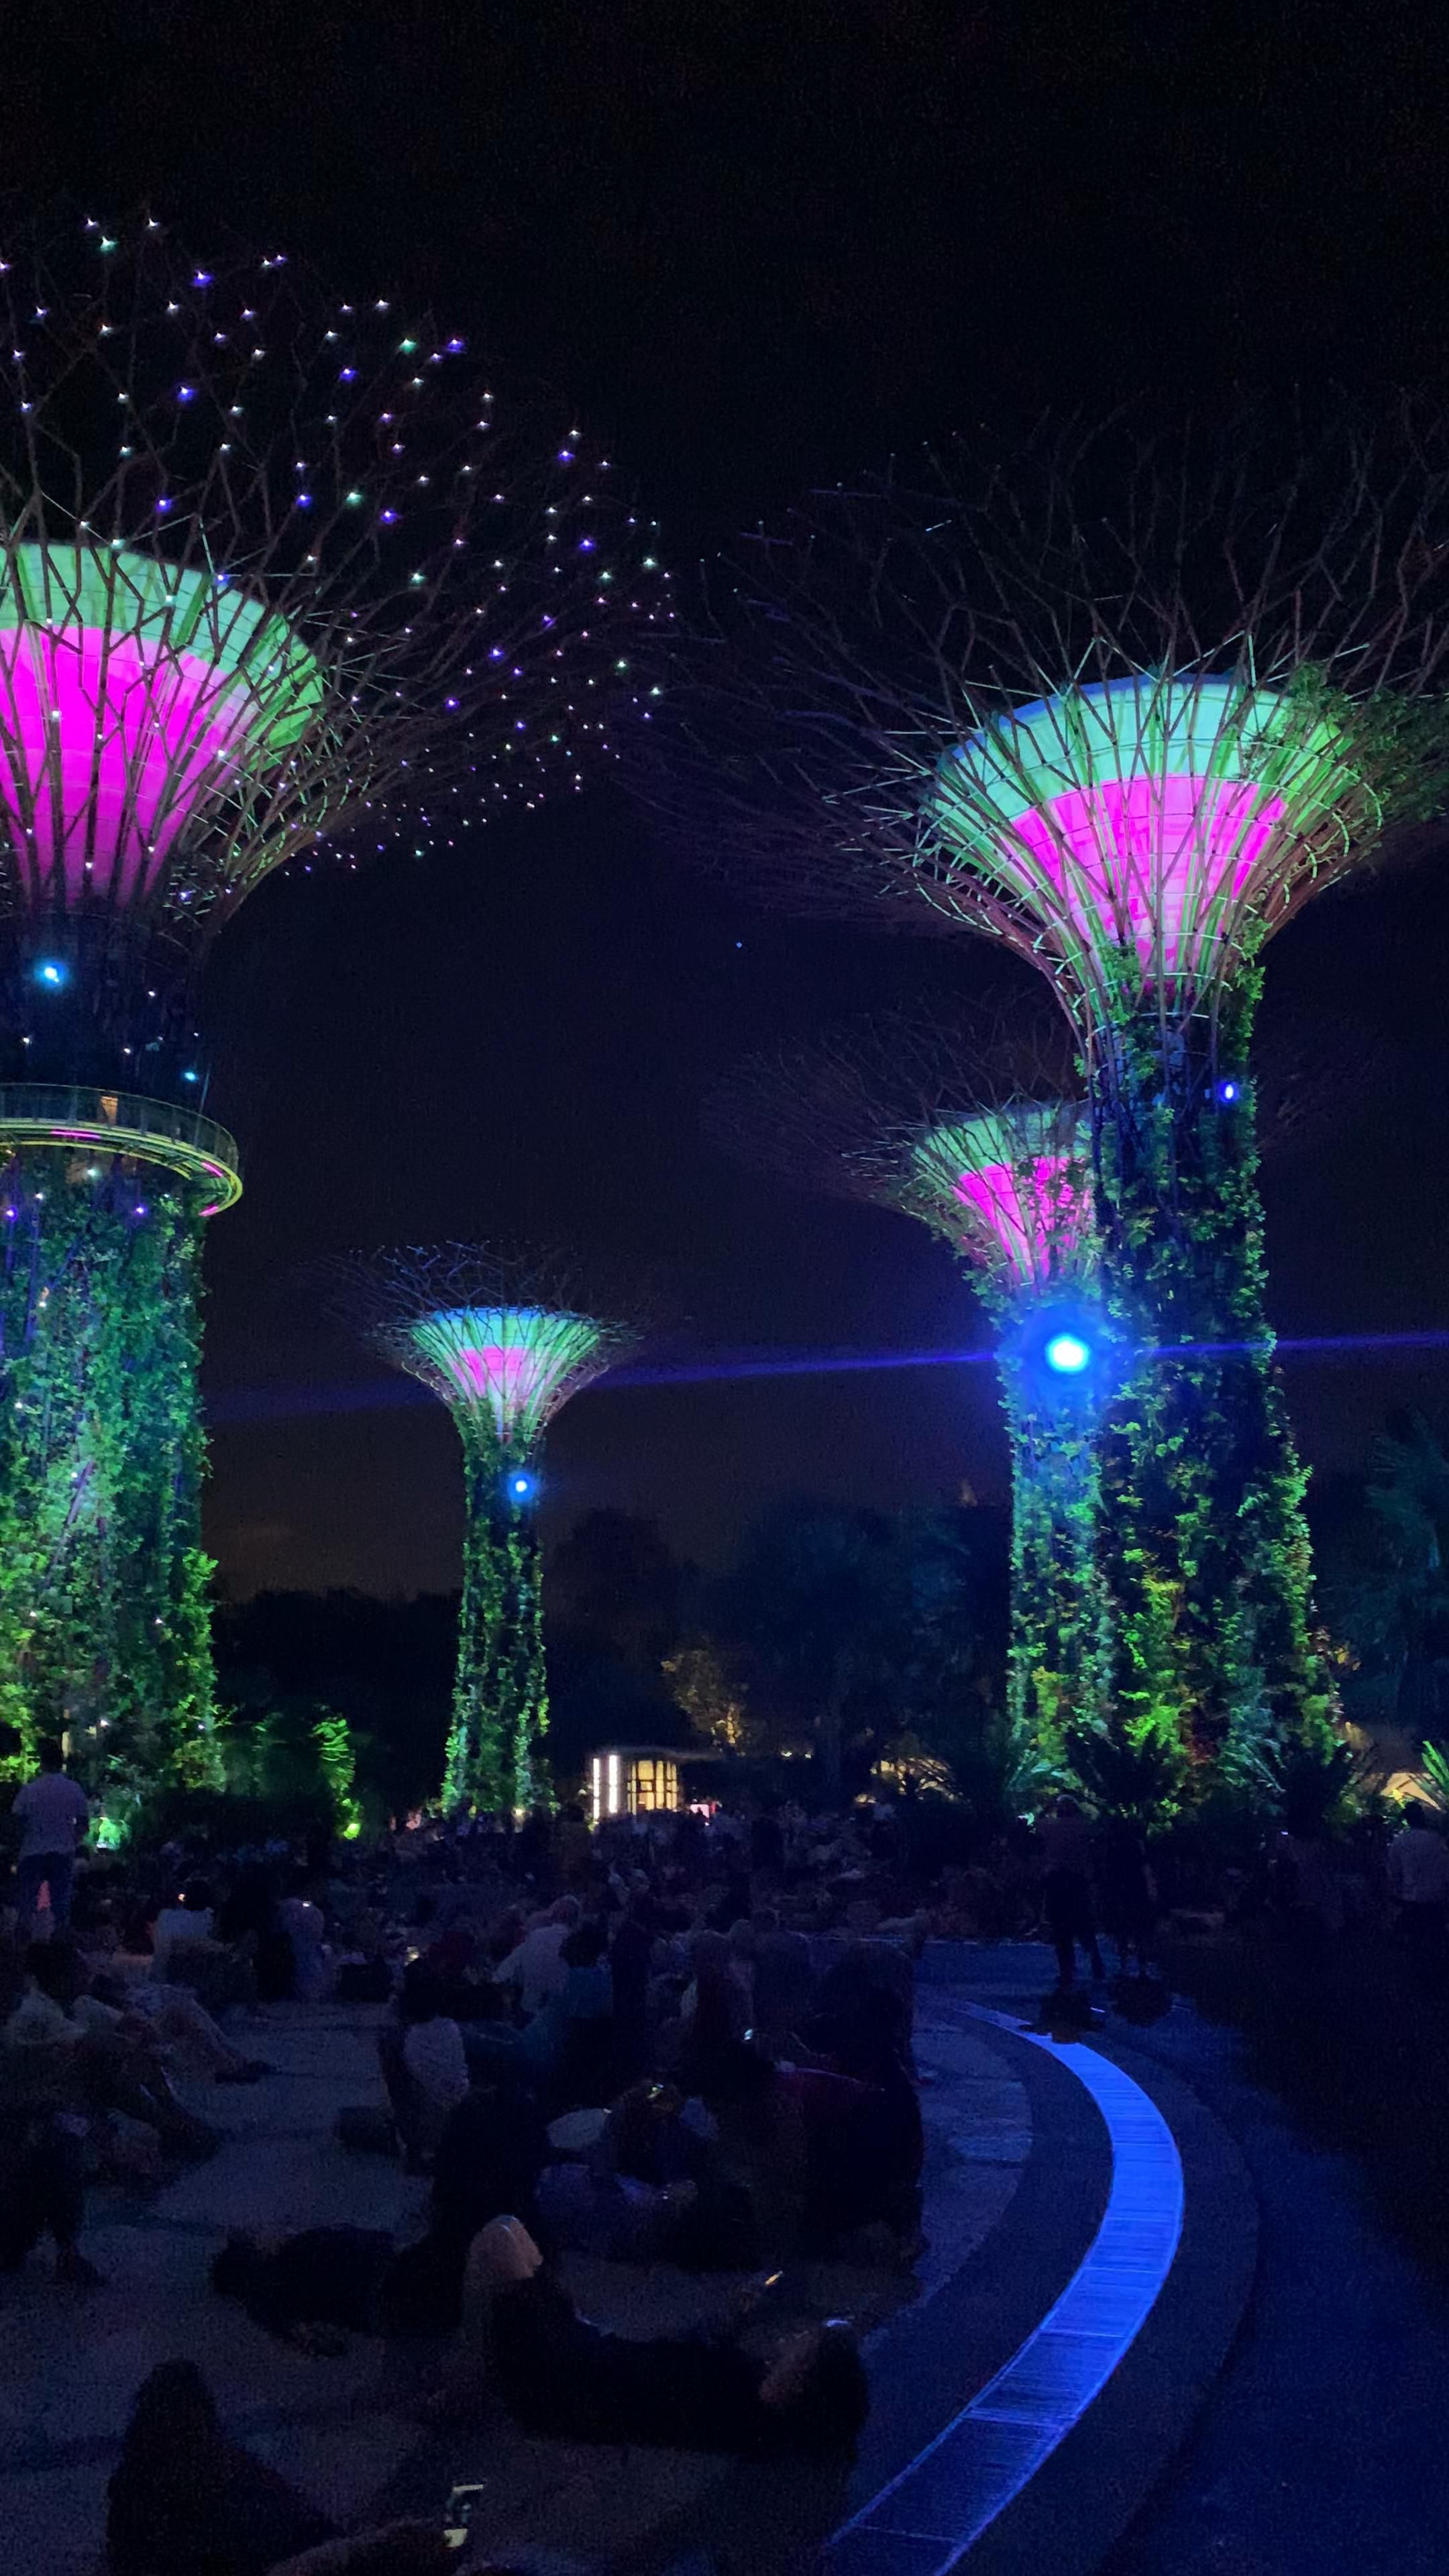 Gardens by the Bay light show in Singapore